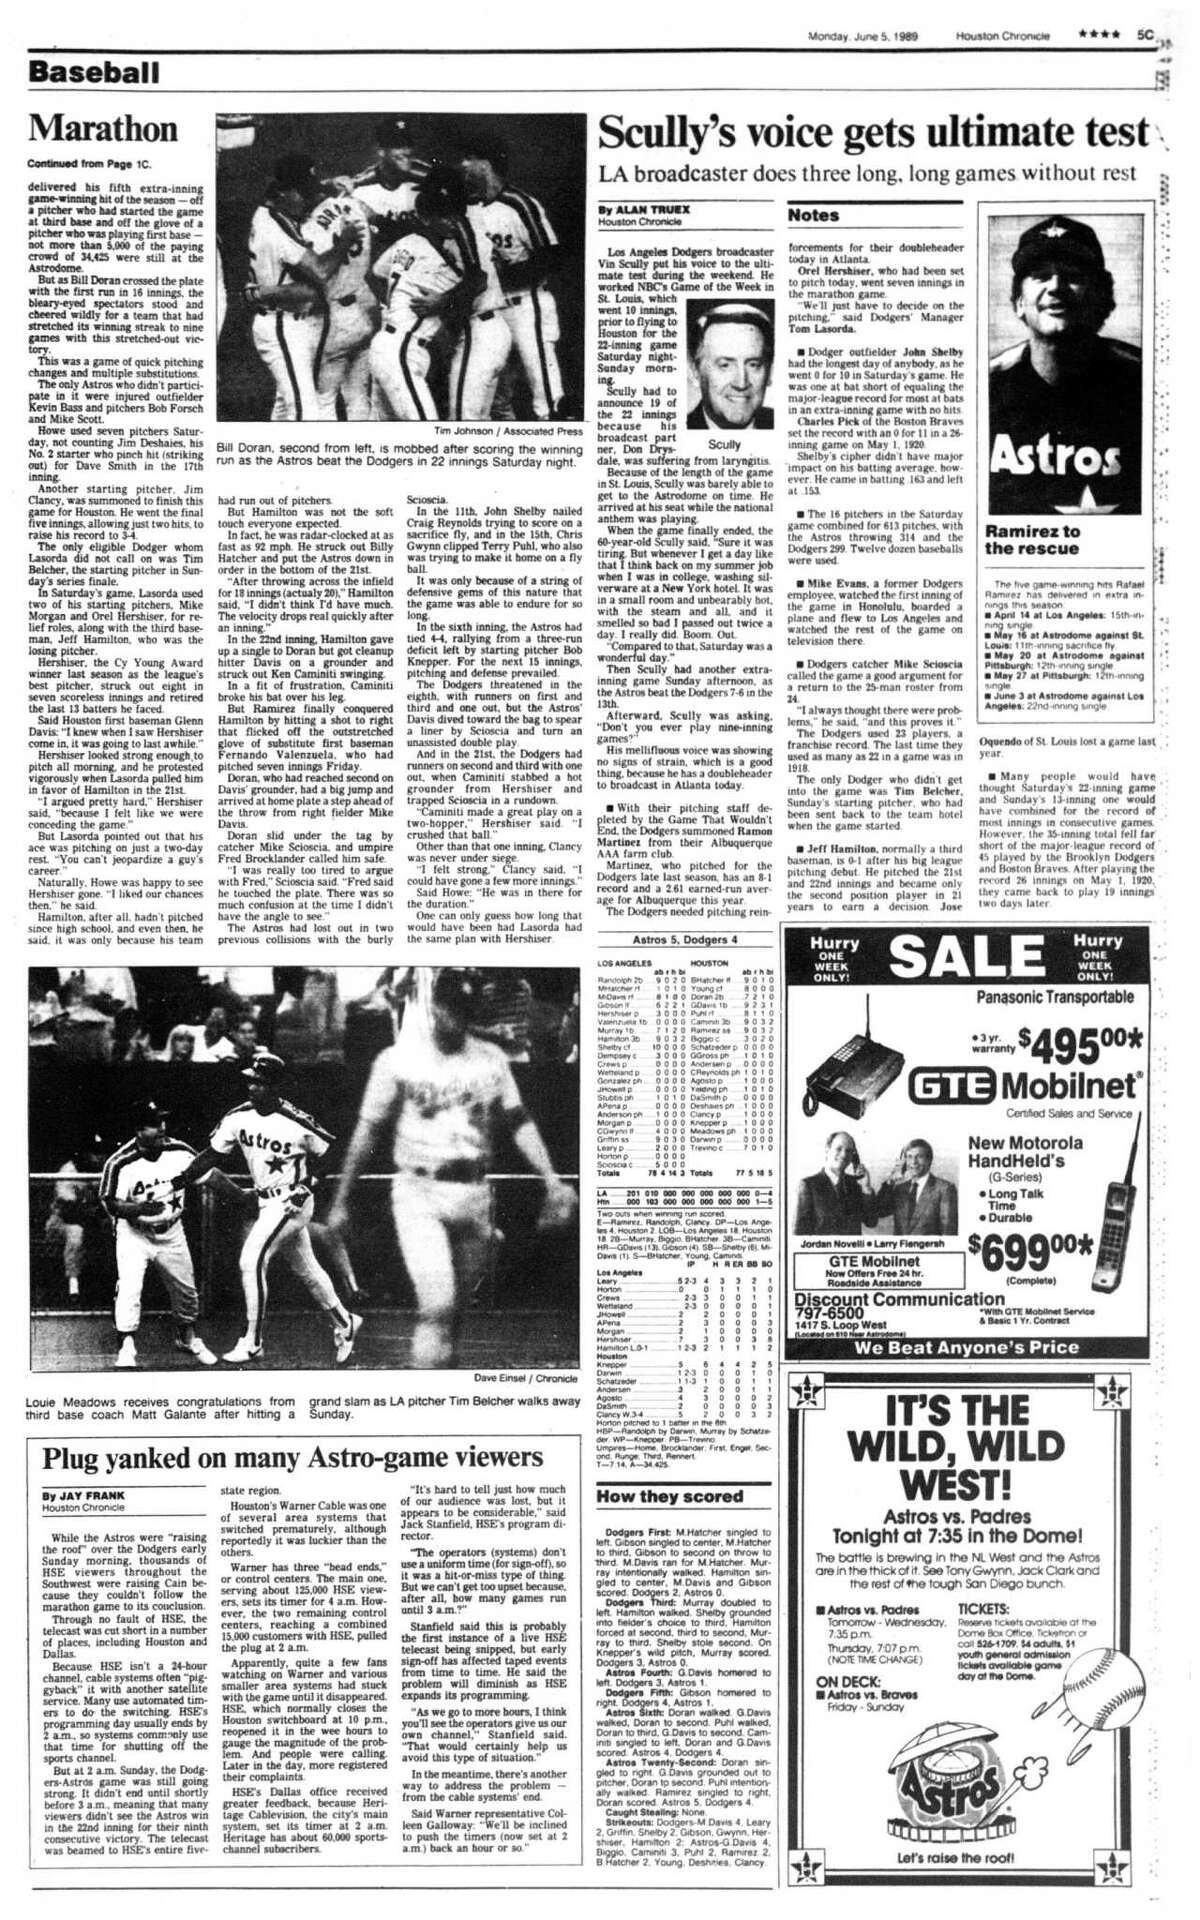 Houston Chronicle inside page (HISTORIC) Â?- June 5, 1989 - section C, page 5. Marathon. Scully's voice gets ultimate test. LA broadcaster does three long, long games without rest. Plug yanked on many Astro-game viewers. (Astros Dodgers)